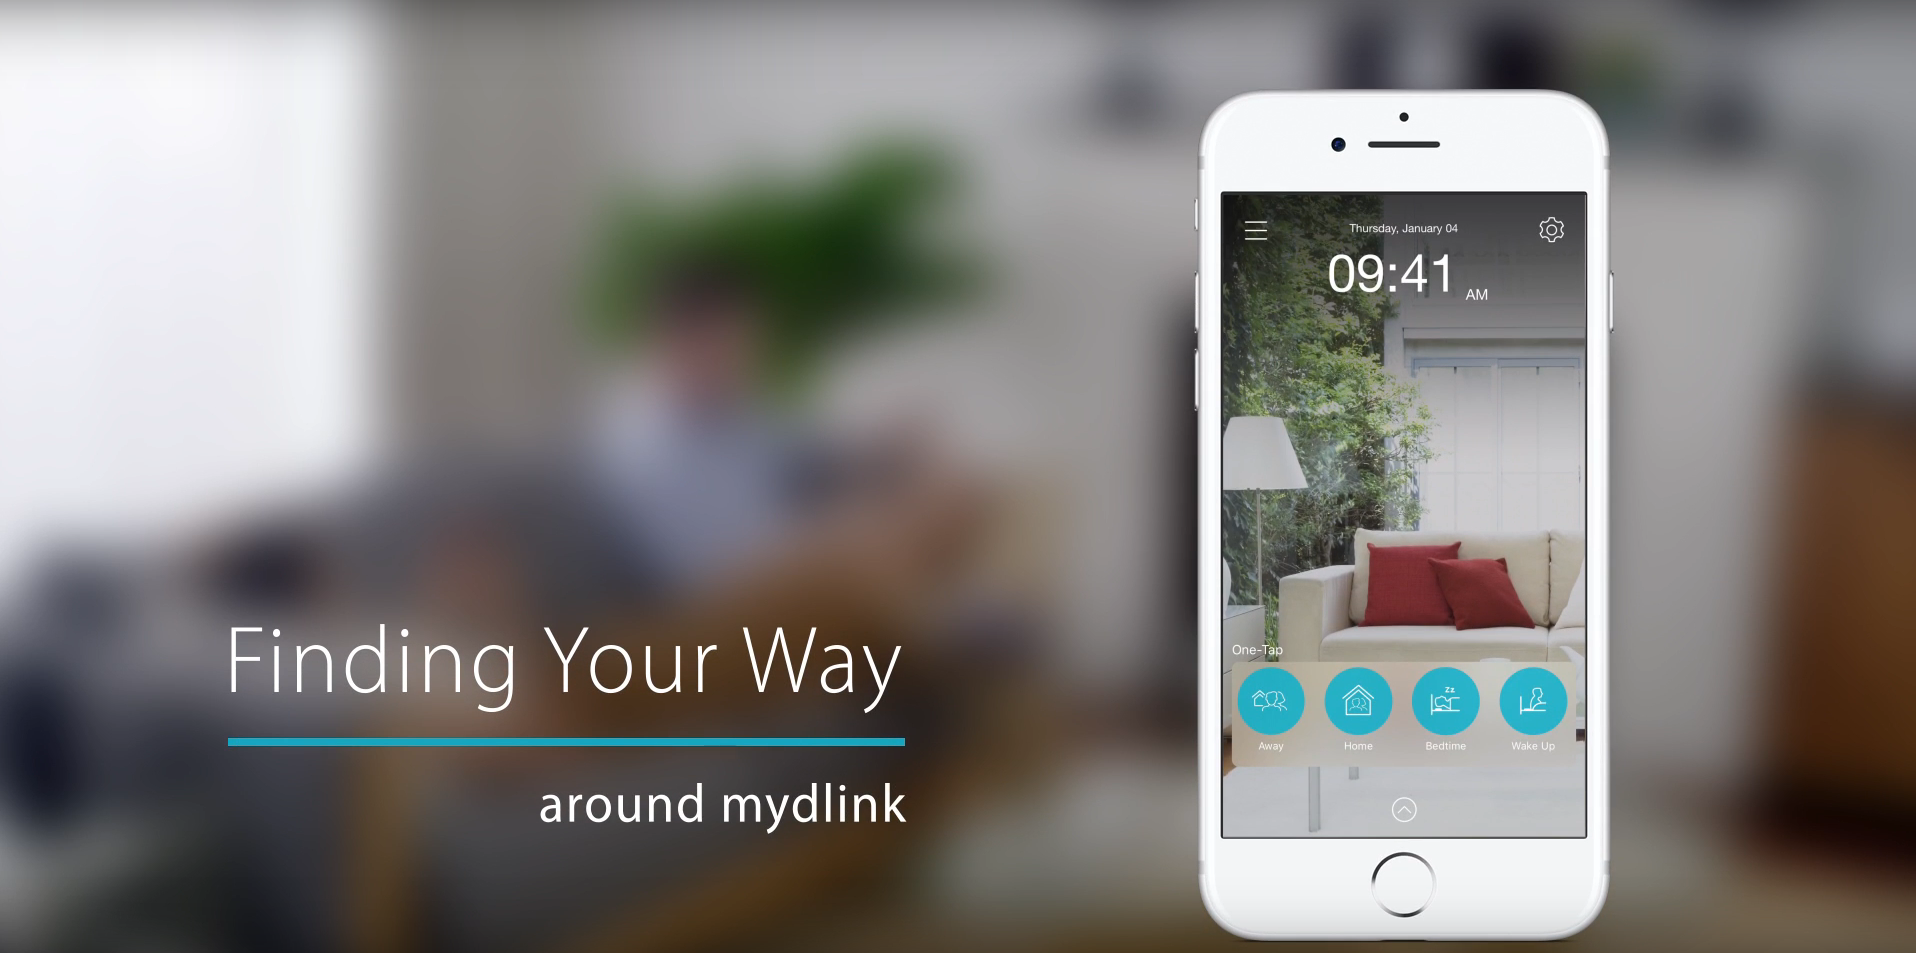 mydlink video setup tutorial - finding your way around mydlink